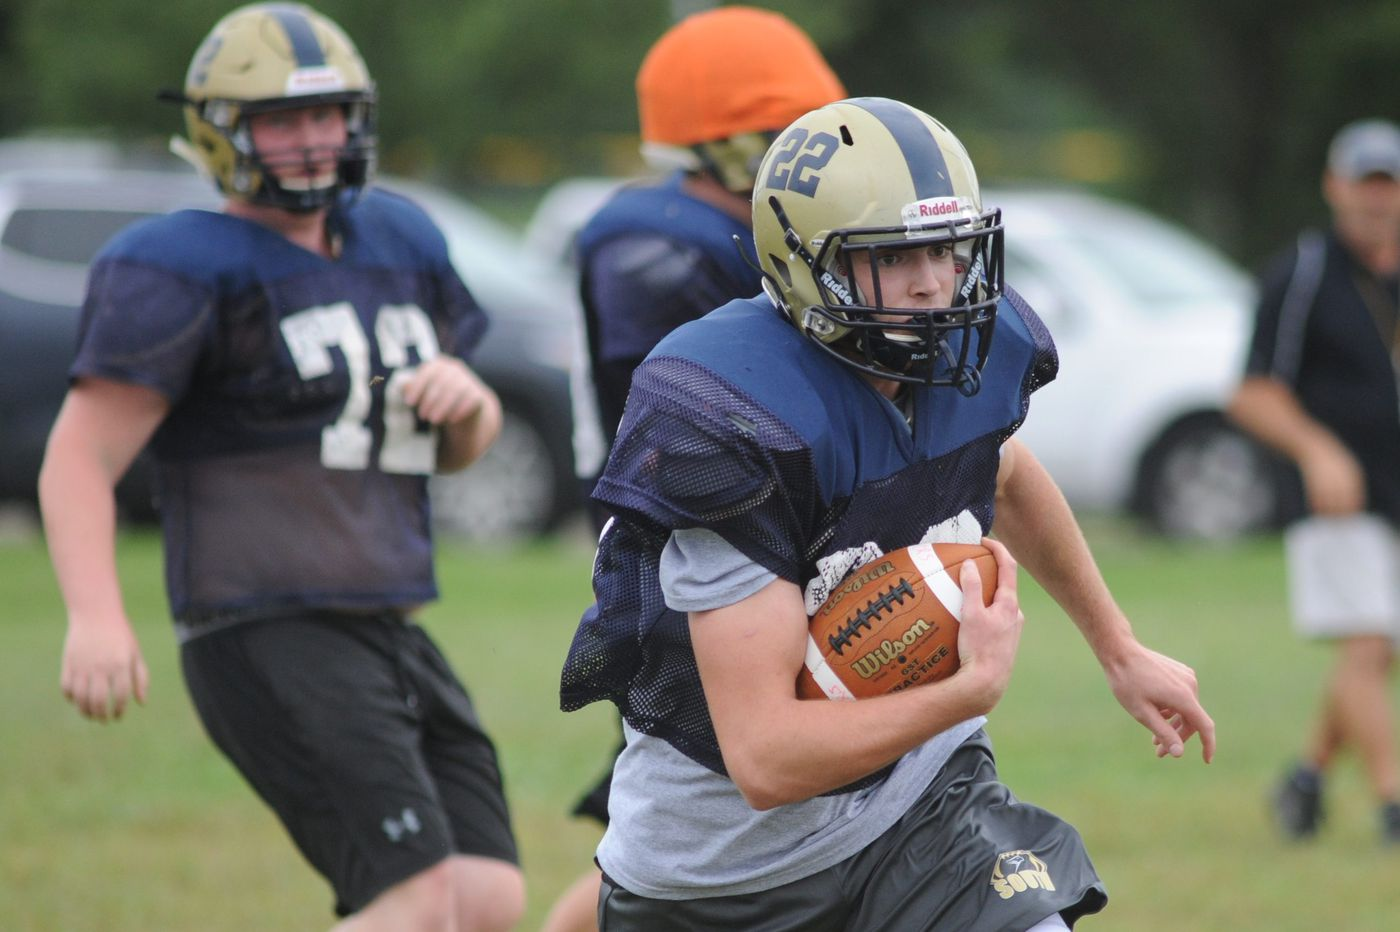 Council Rock South vs. Neshaminy highlights football games with big playoff implications